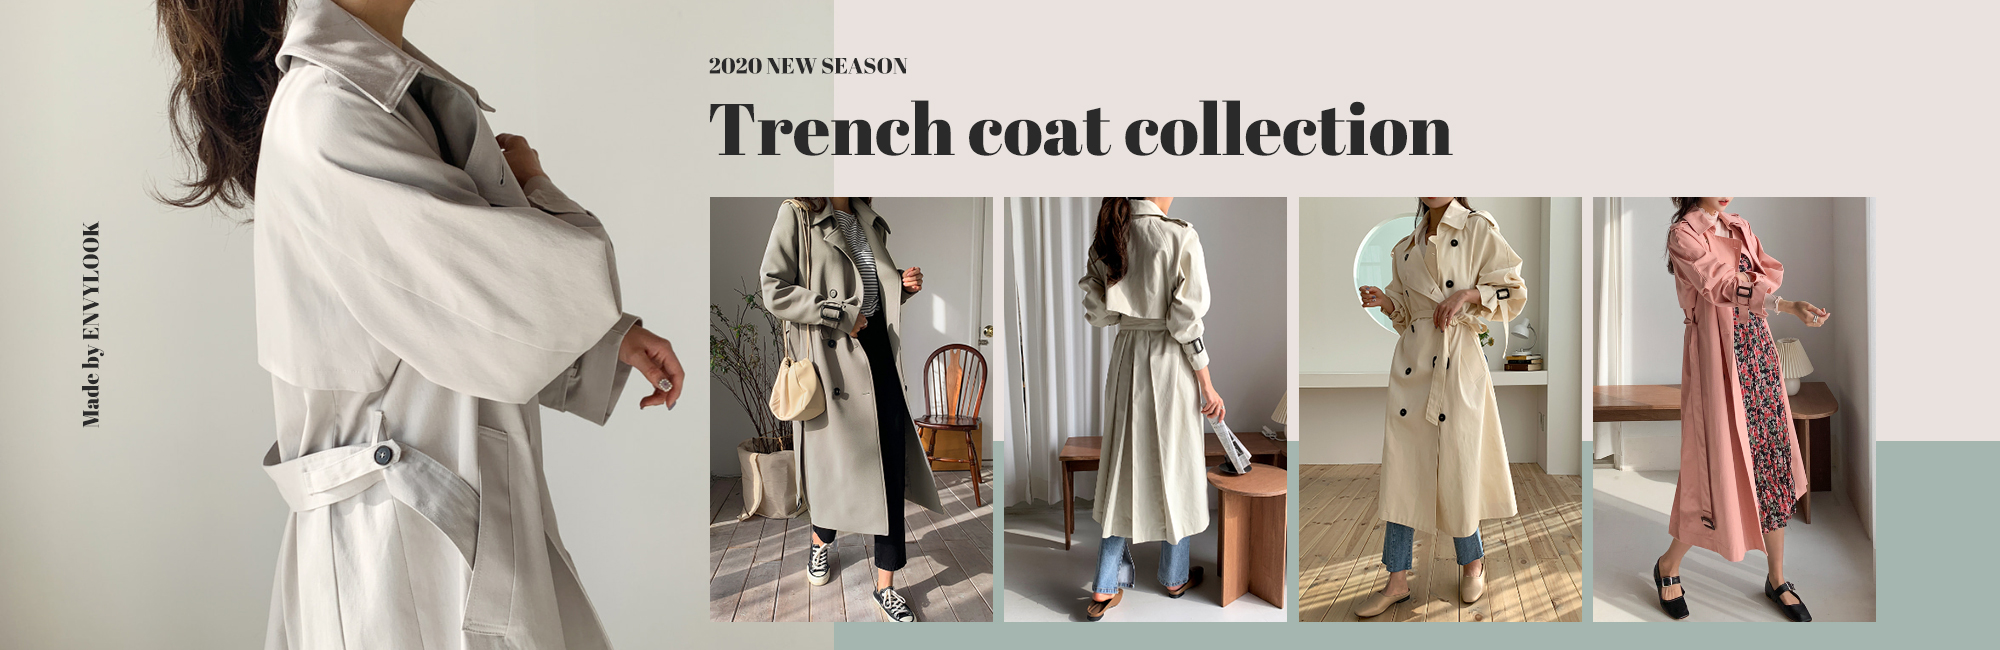 trench coat collection